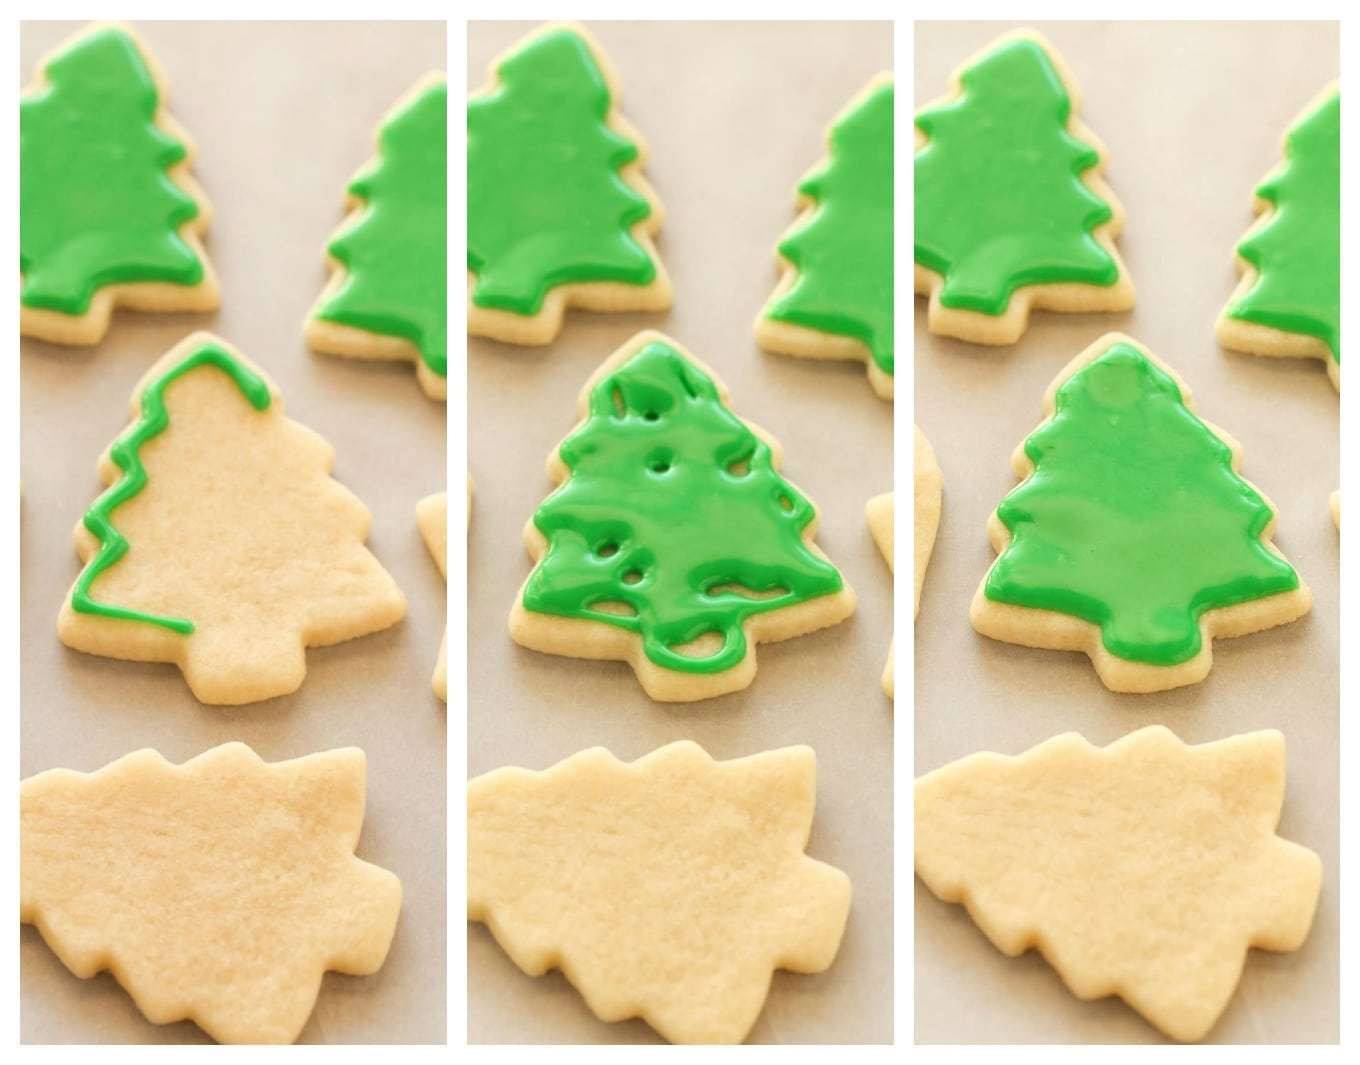 Christmas Tree Cut Out Cookies  Soft Christmas Cut Out Sugar Cookies Live Well Bake ten